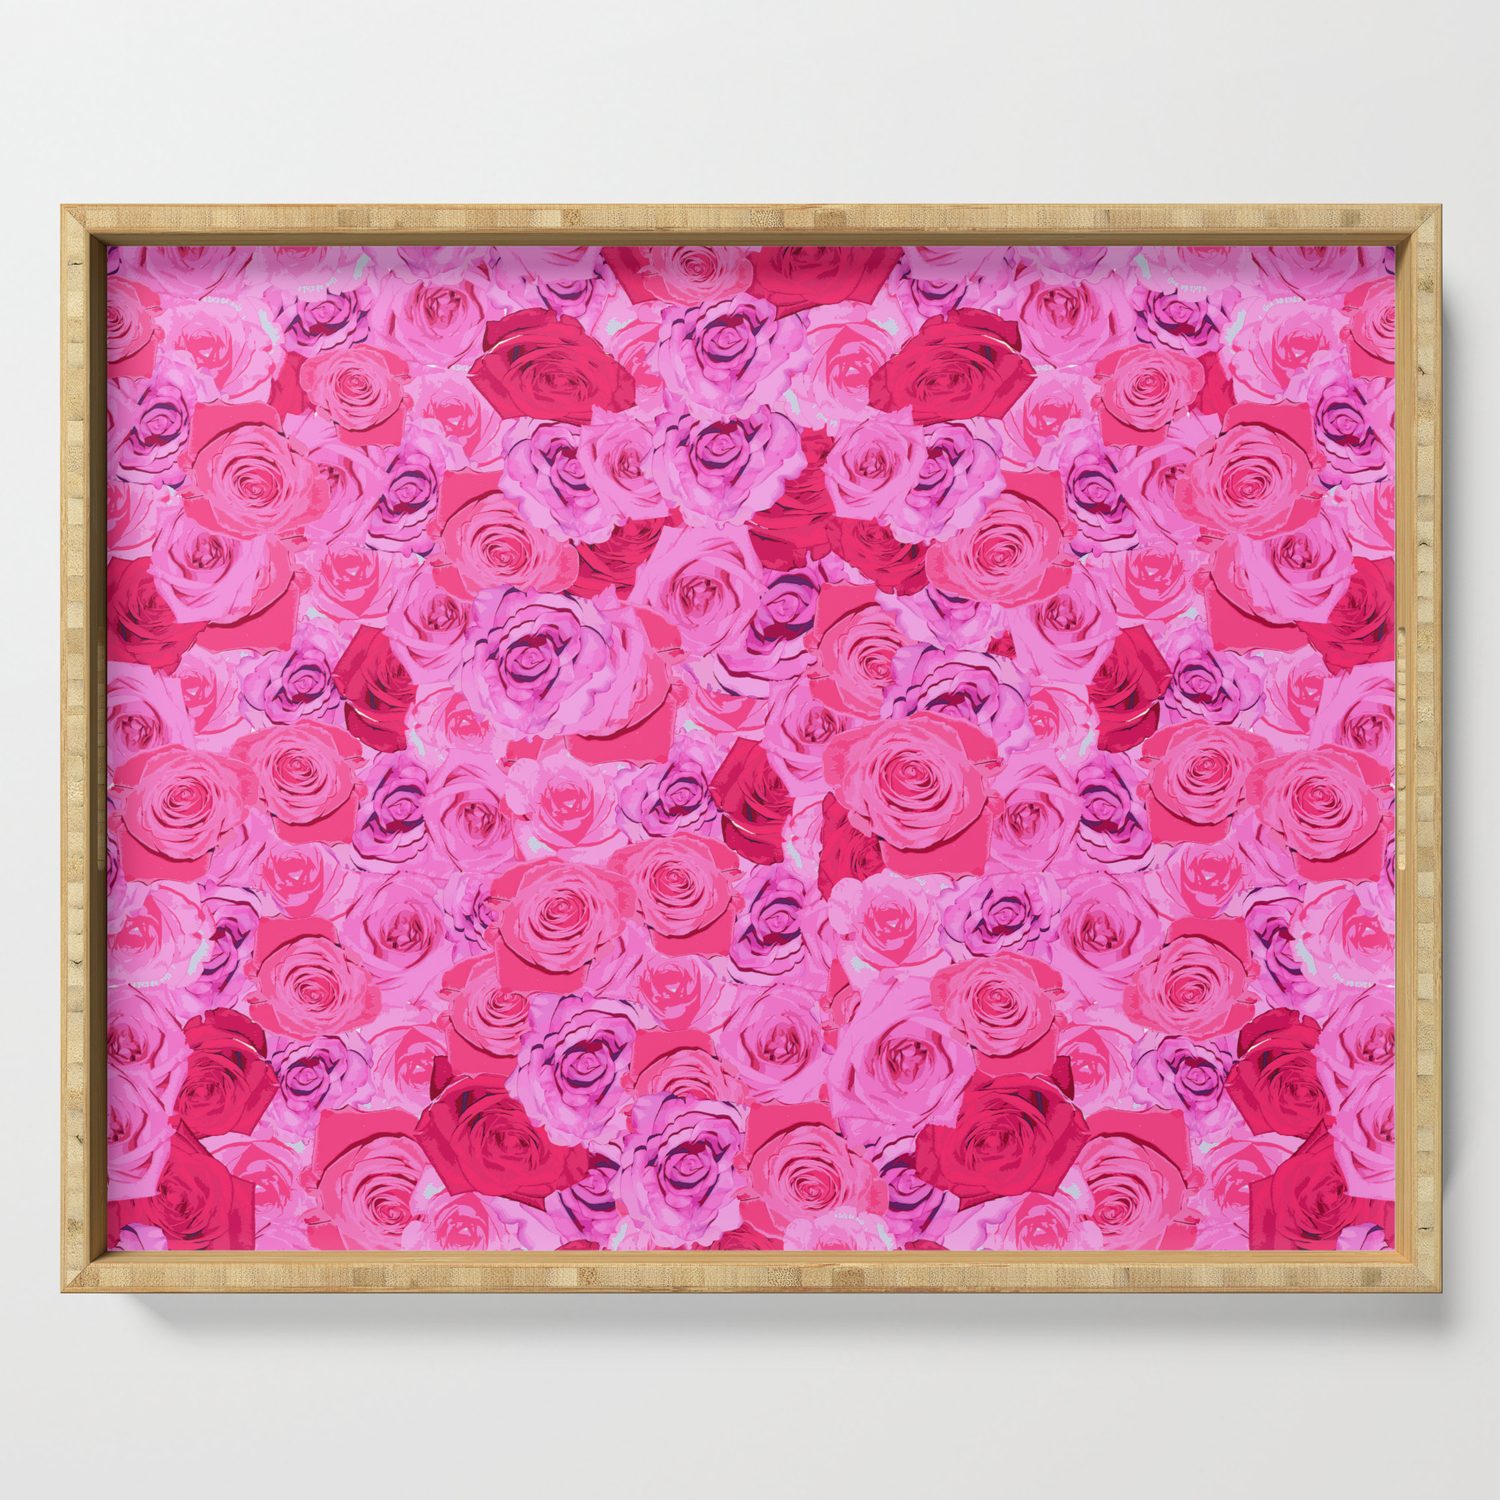 Floral Pink And Red Roses Tumblr Aesthetic Serving Tray By